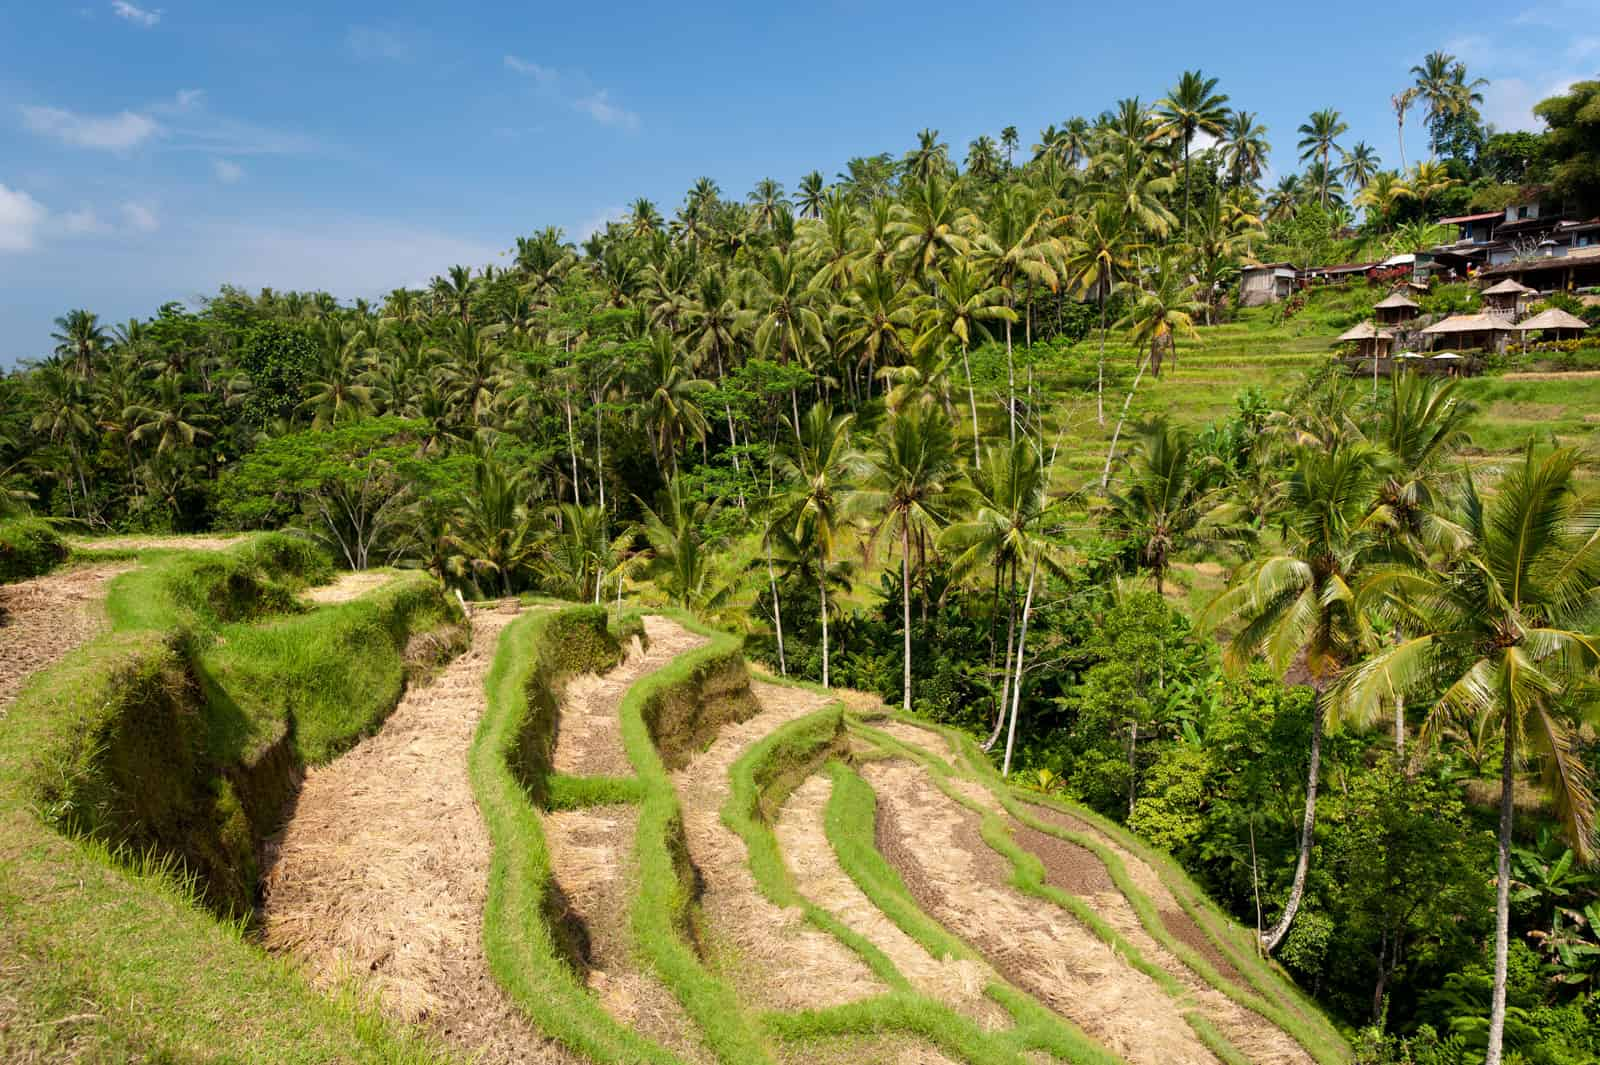 Rice Paddies around Ubud, Bali, Indonesia